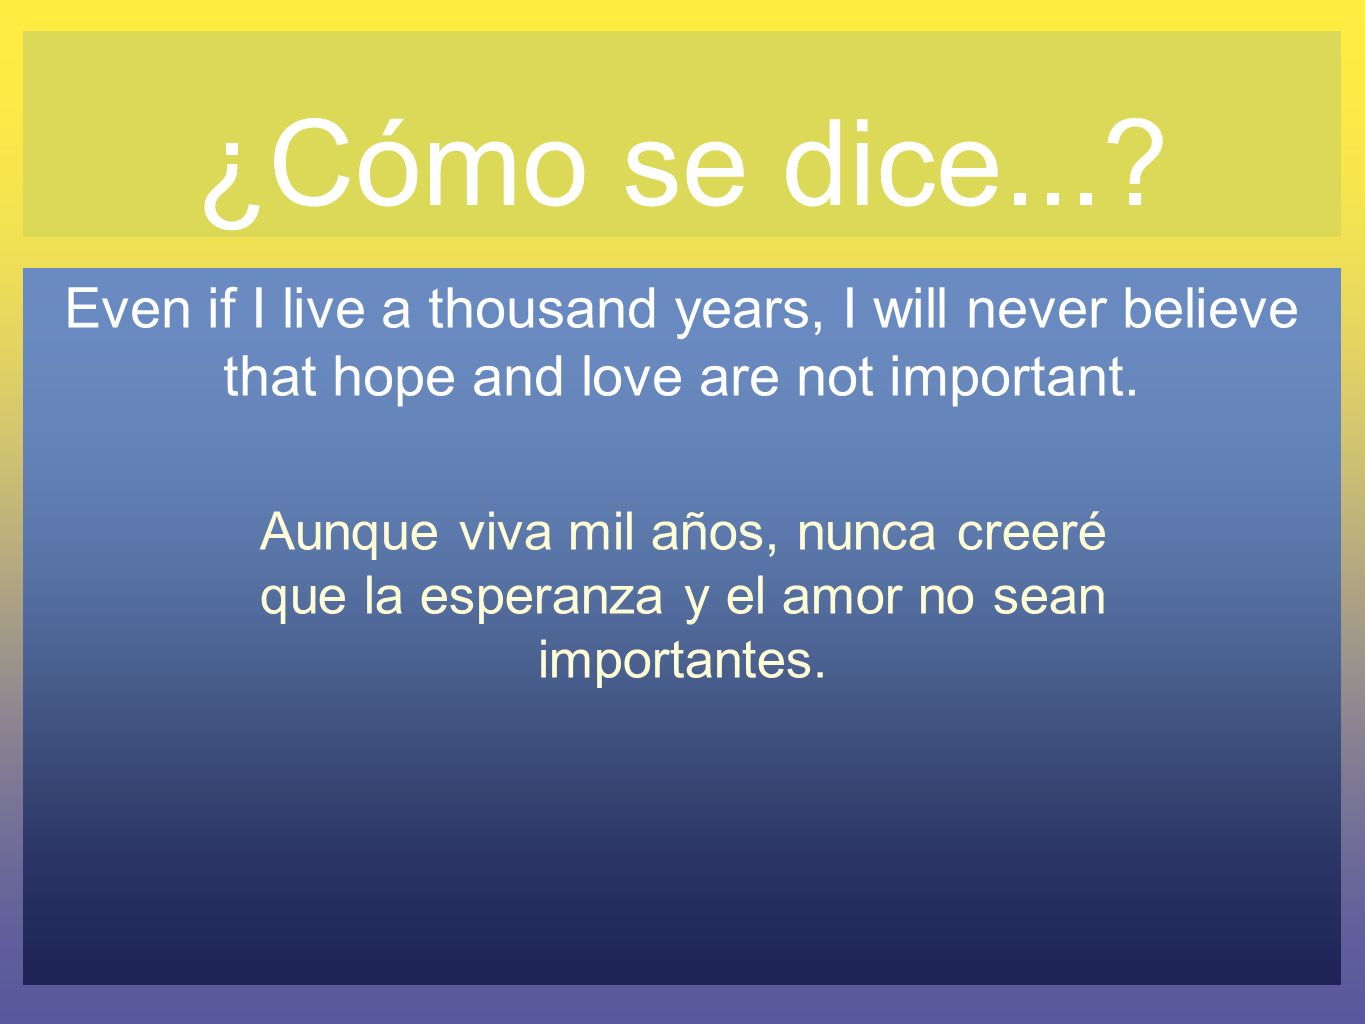 ¿Cómo se dice... Even if I live a thousand years, I will never believe that hope and love are not important.